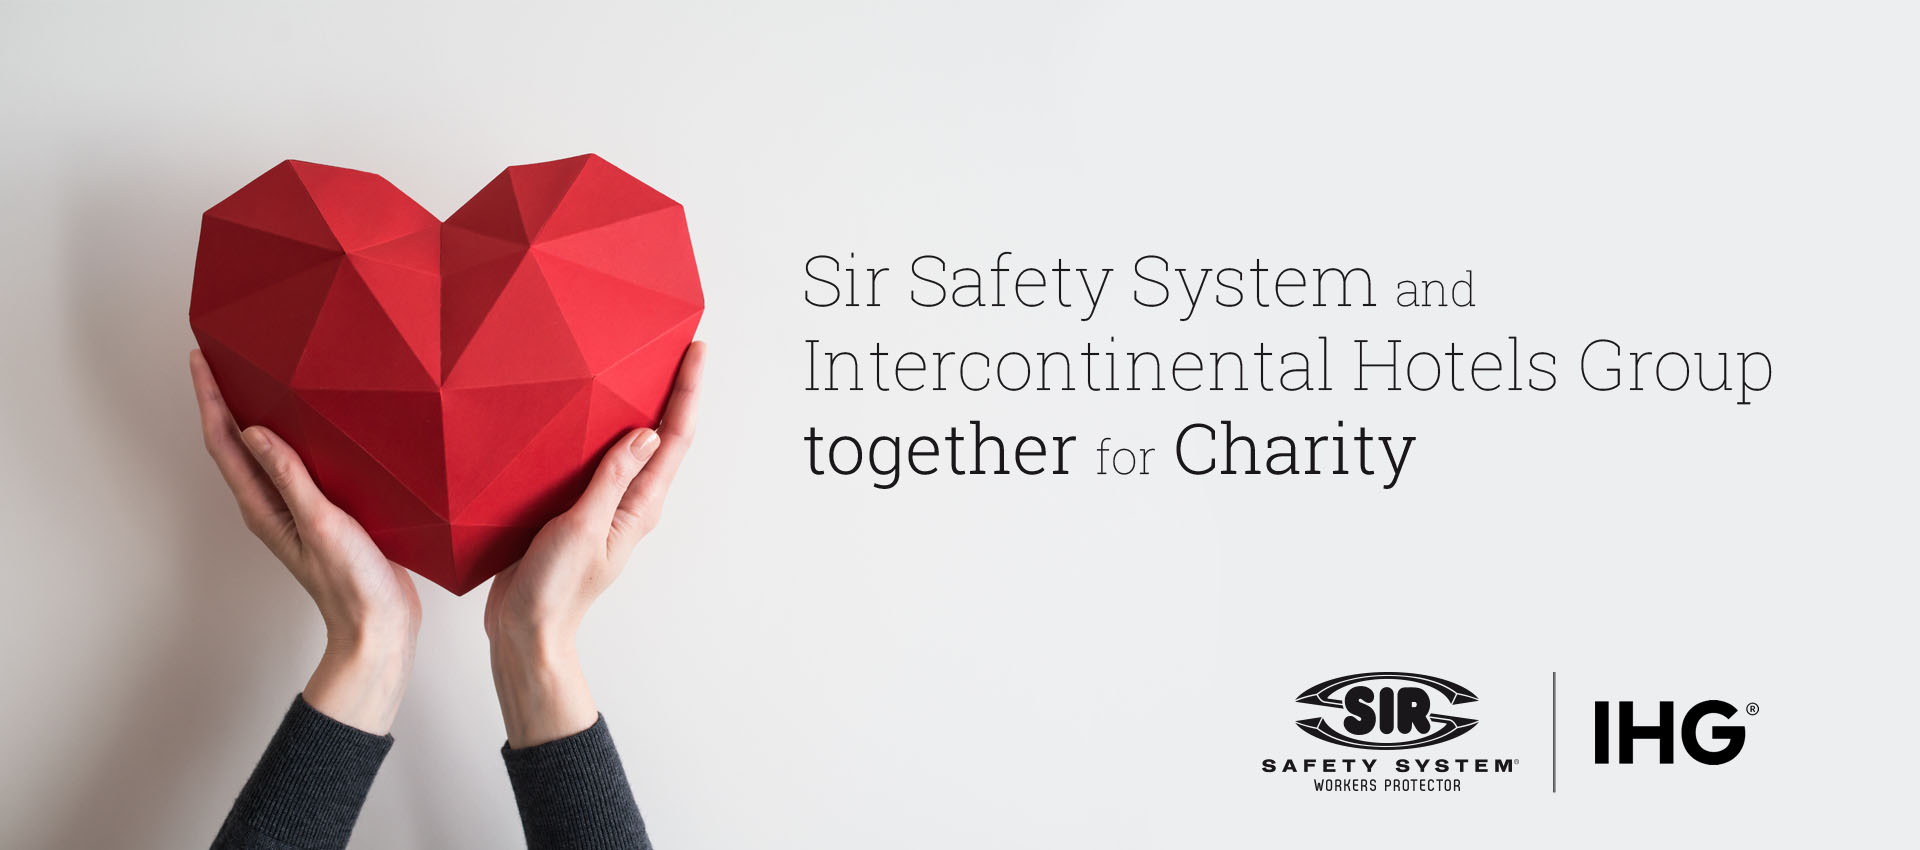 Sir Safety System will be attending Expoprotection in Paris